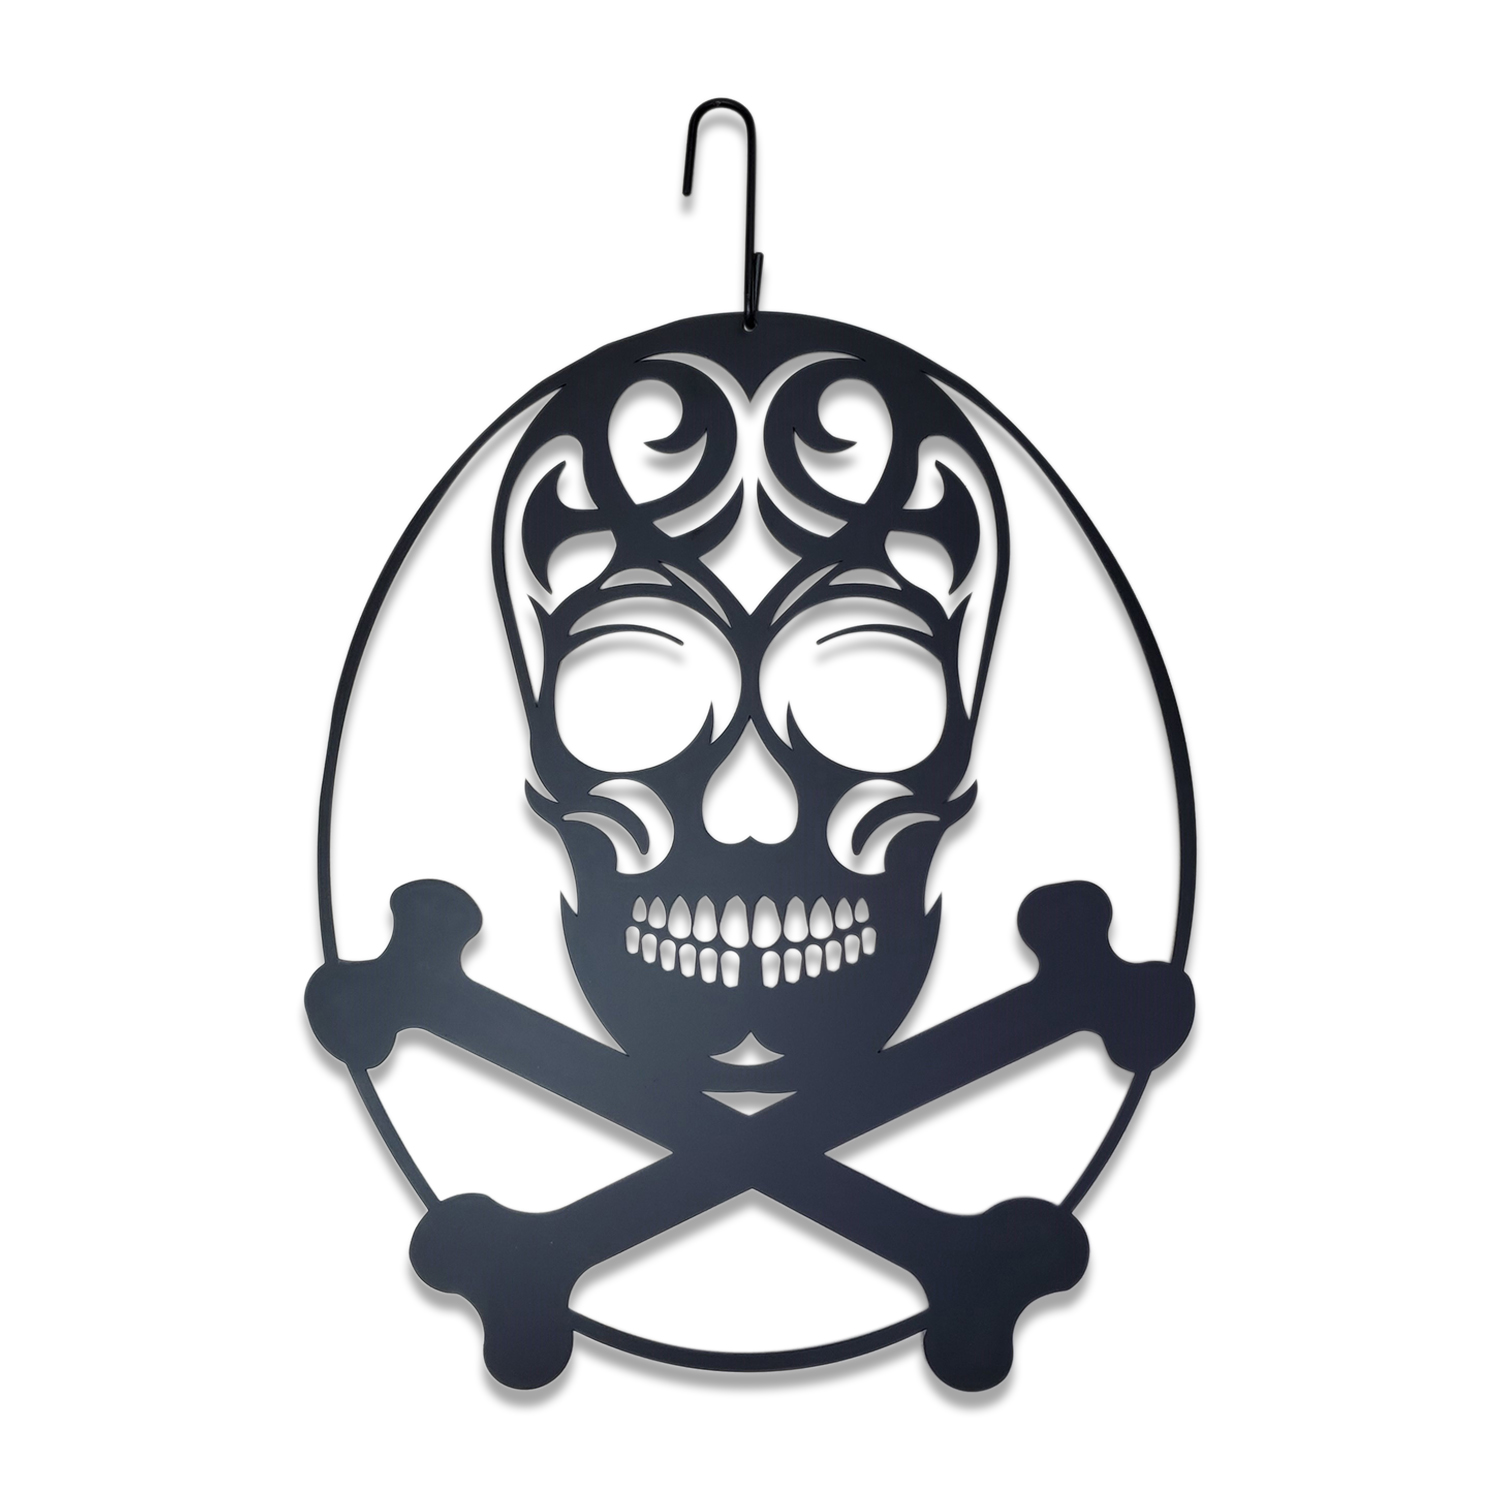 Skull with Cross Bones - Decorative Hanging Silhouette